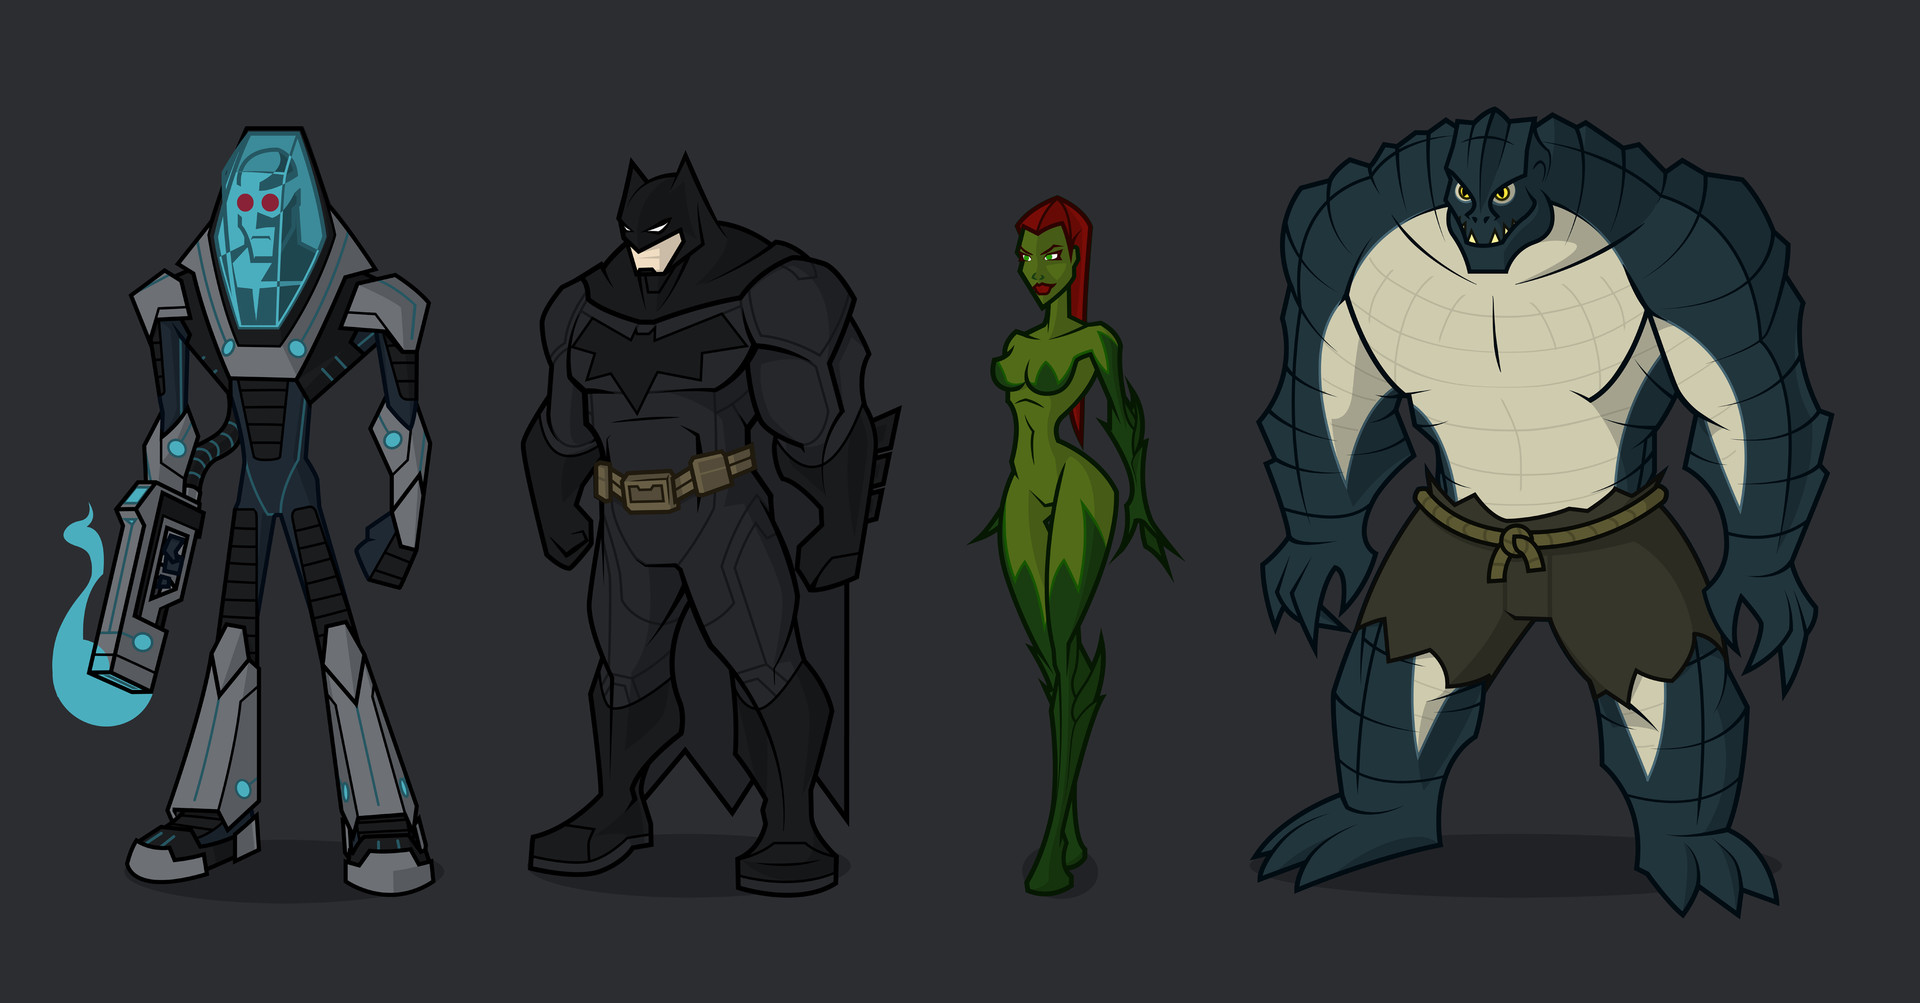 For that Killer croc and poison ivy